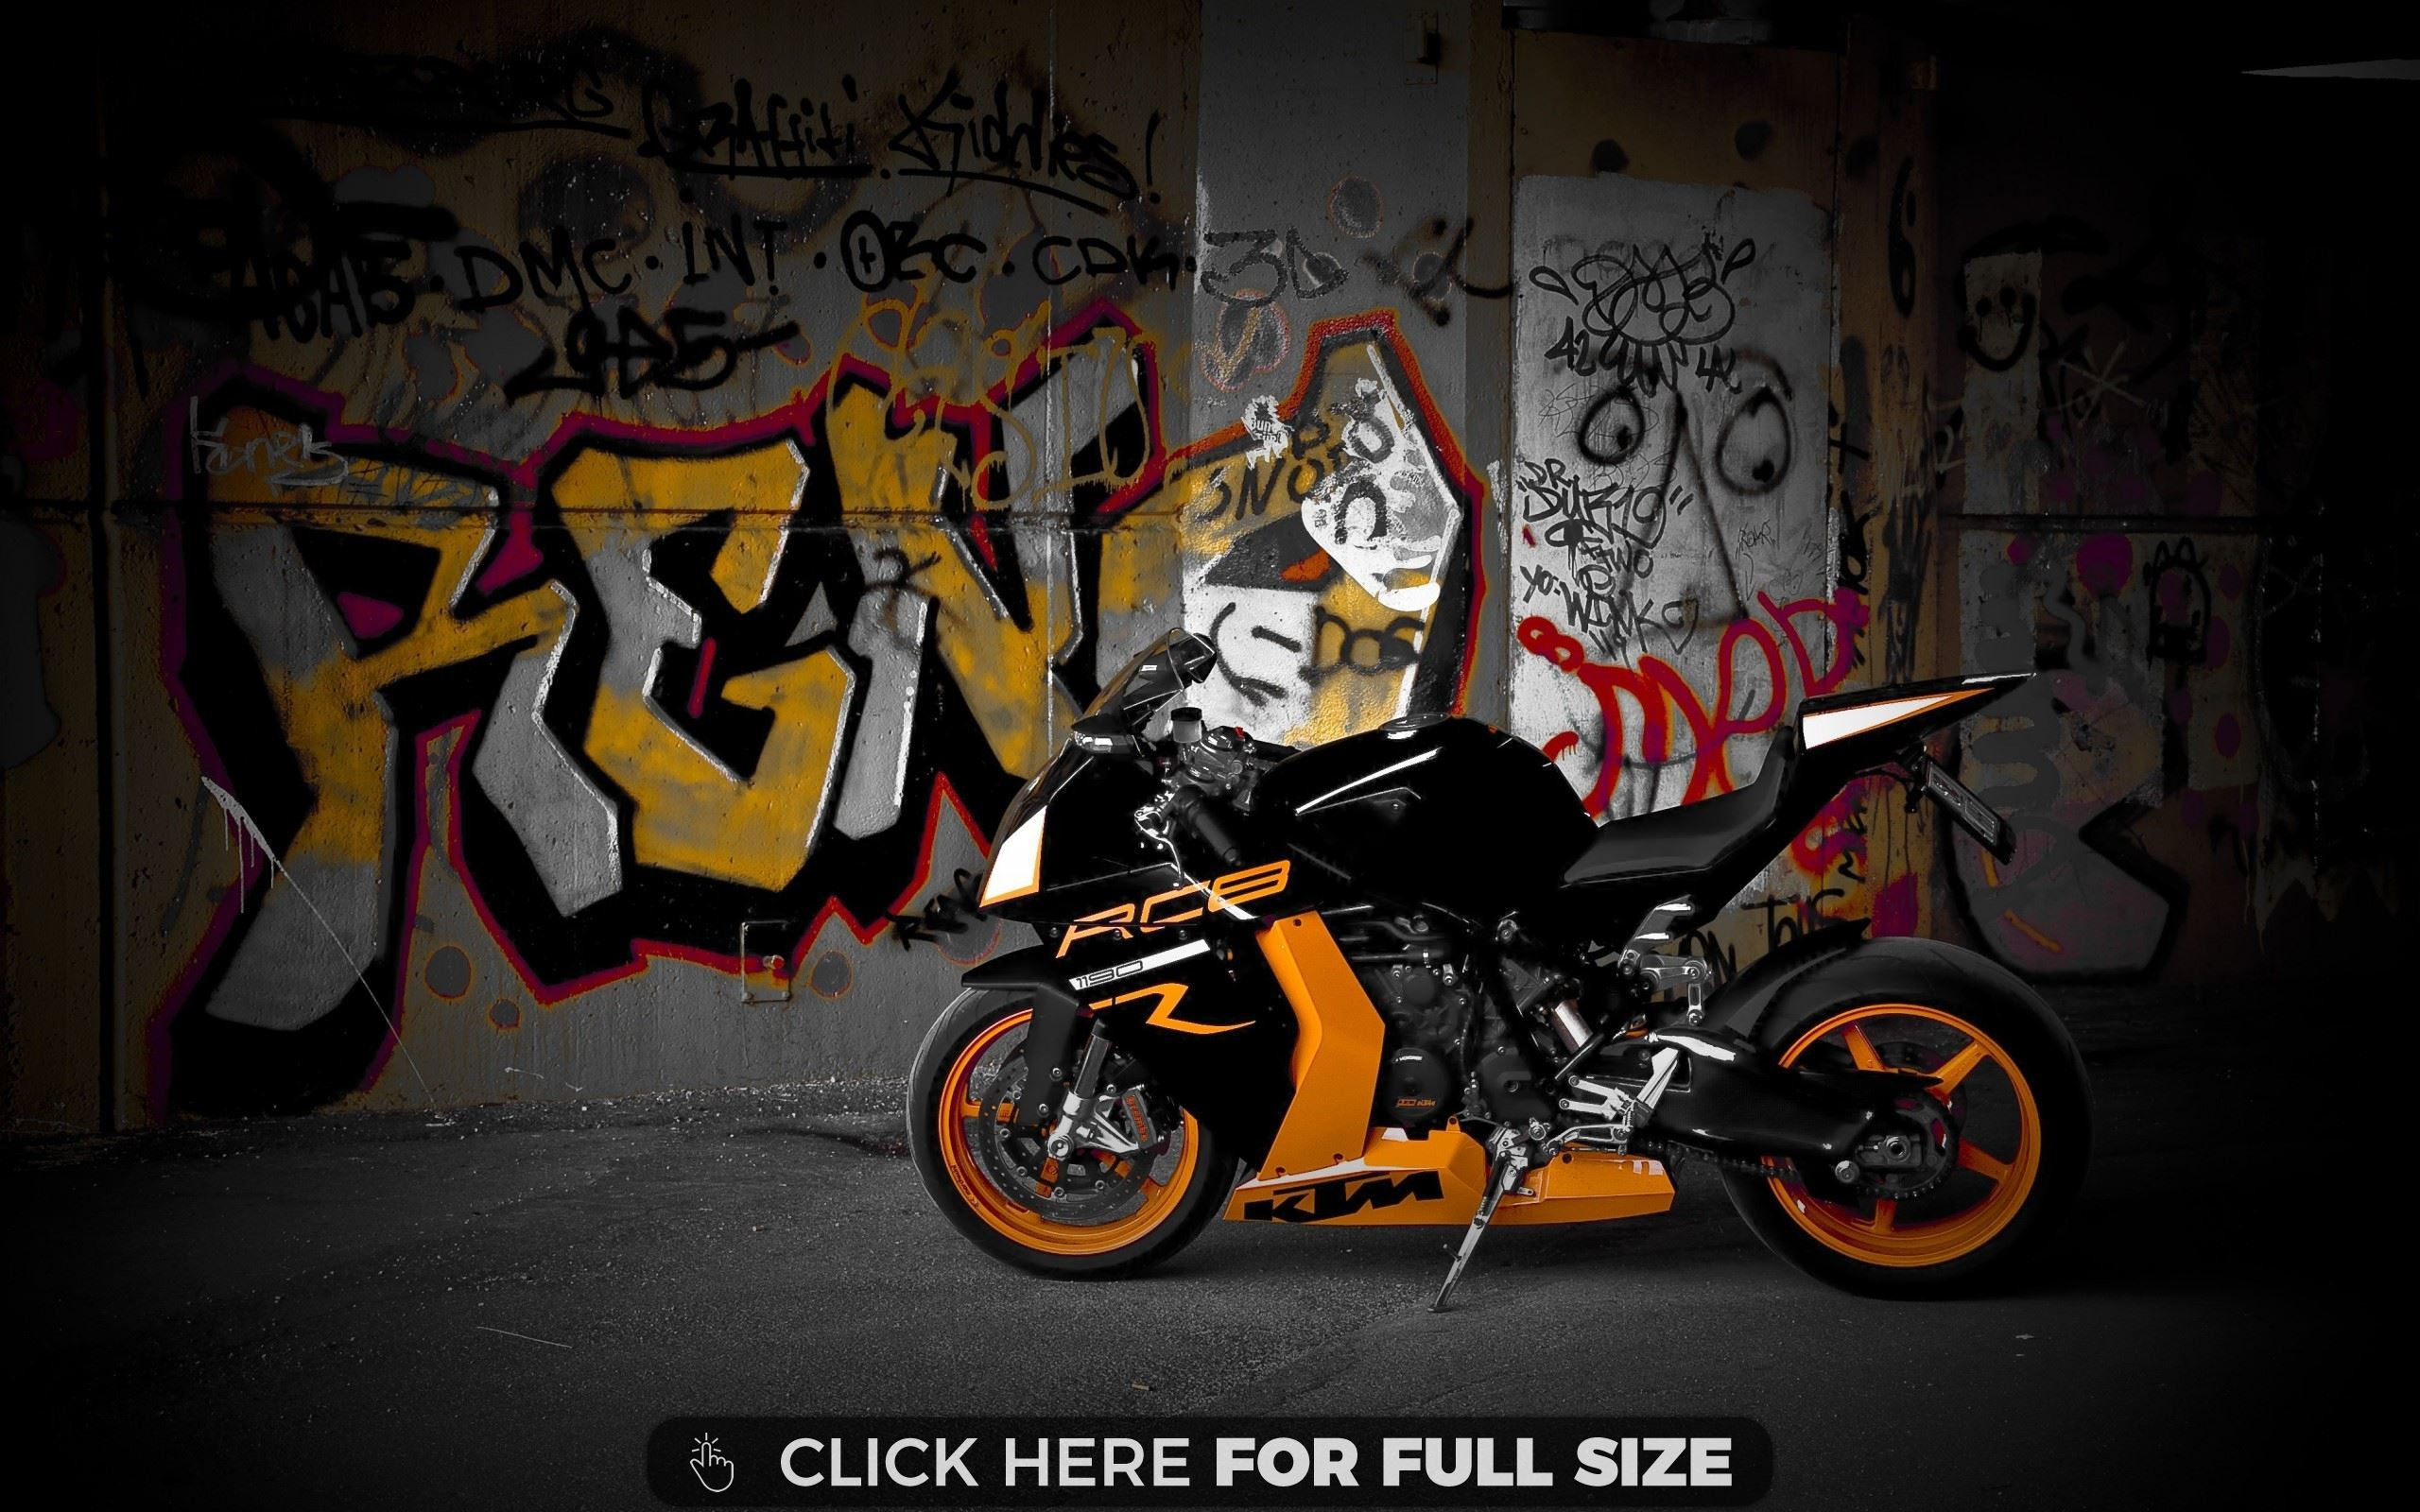 Ktm New 2016 Bike Wallpapers: Ktm Rc8 2018 Wallpaper HD (73+ Pictures